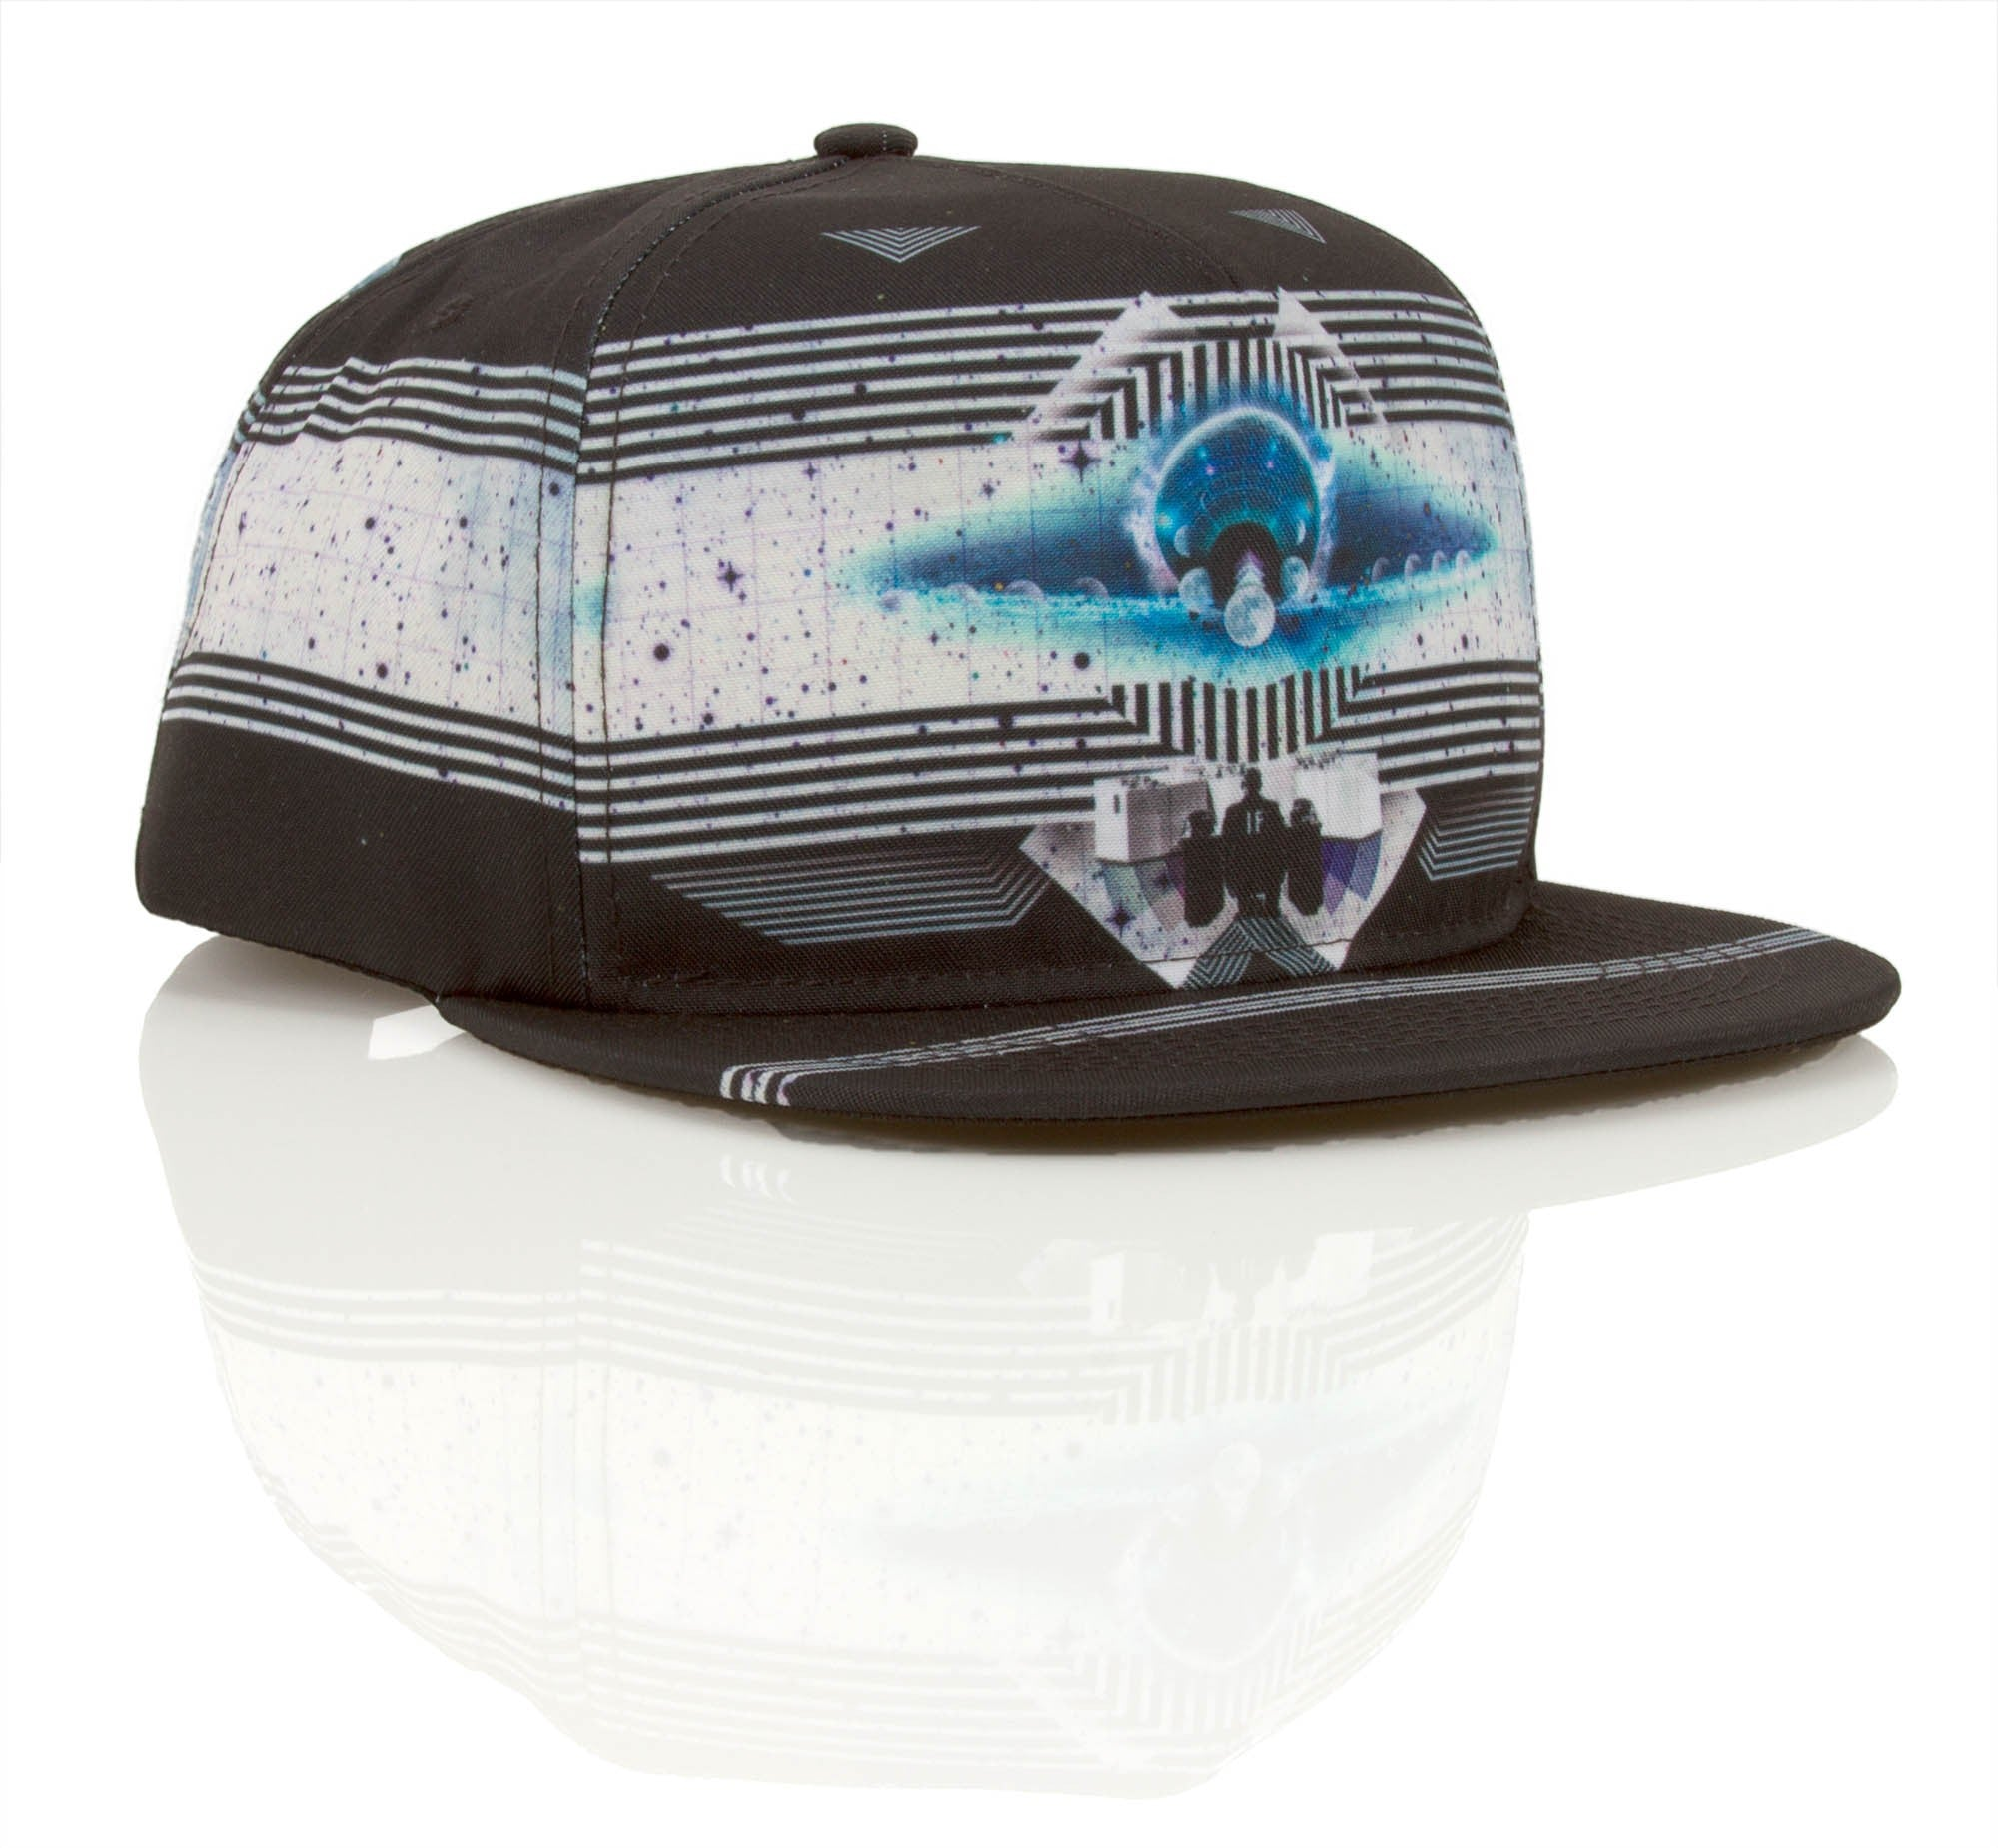 Imaginary Foundation - Mission Control Snapback - The Giant Peach - 2